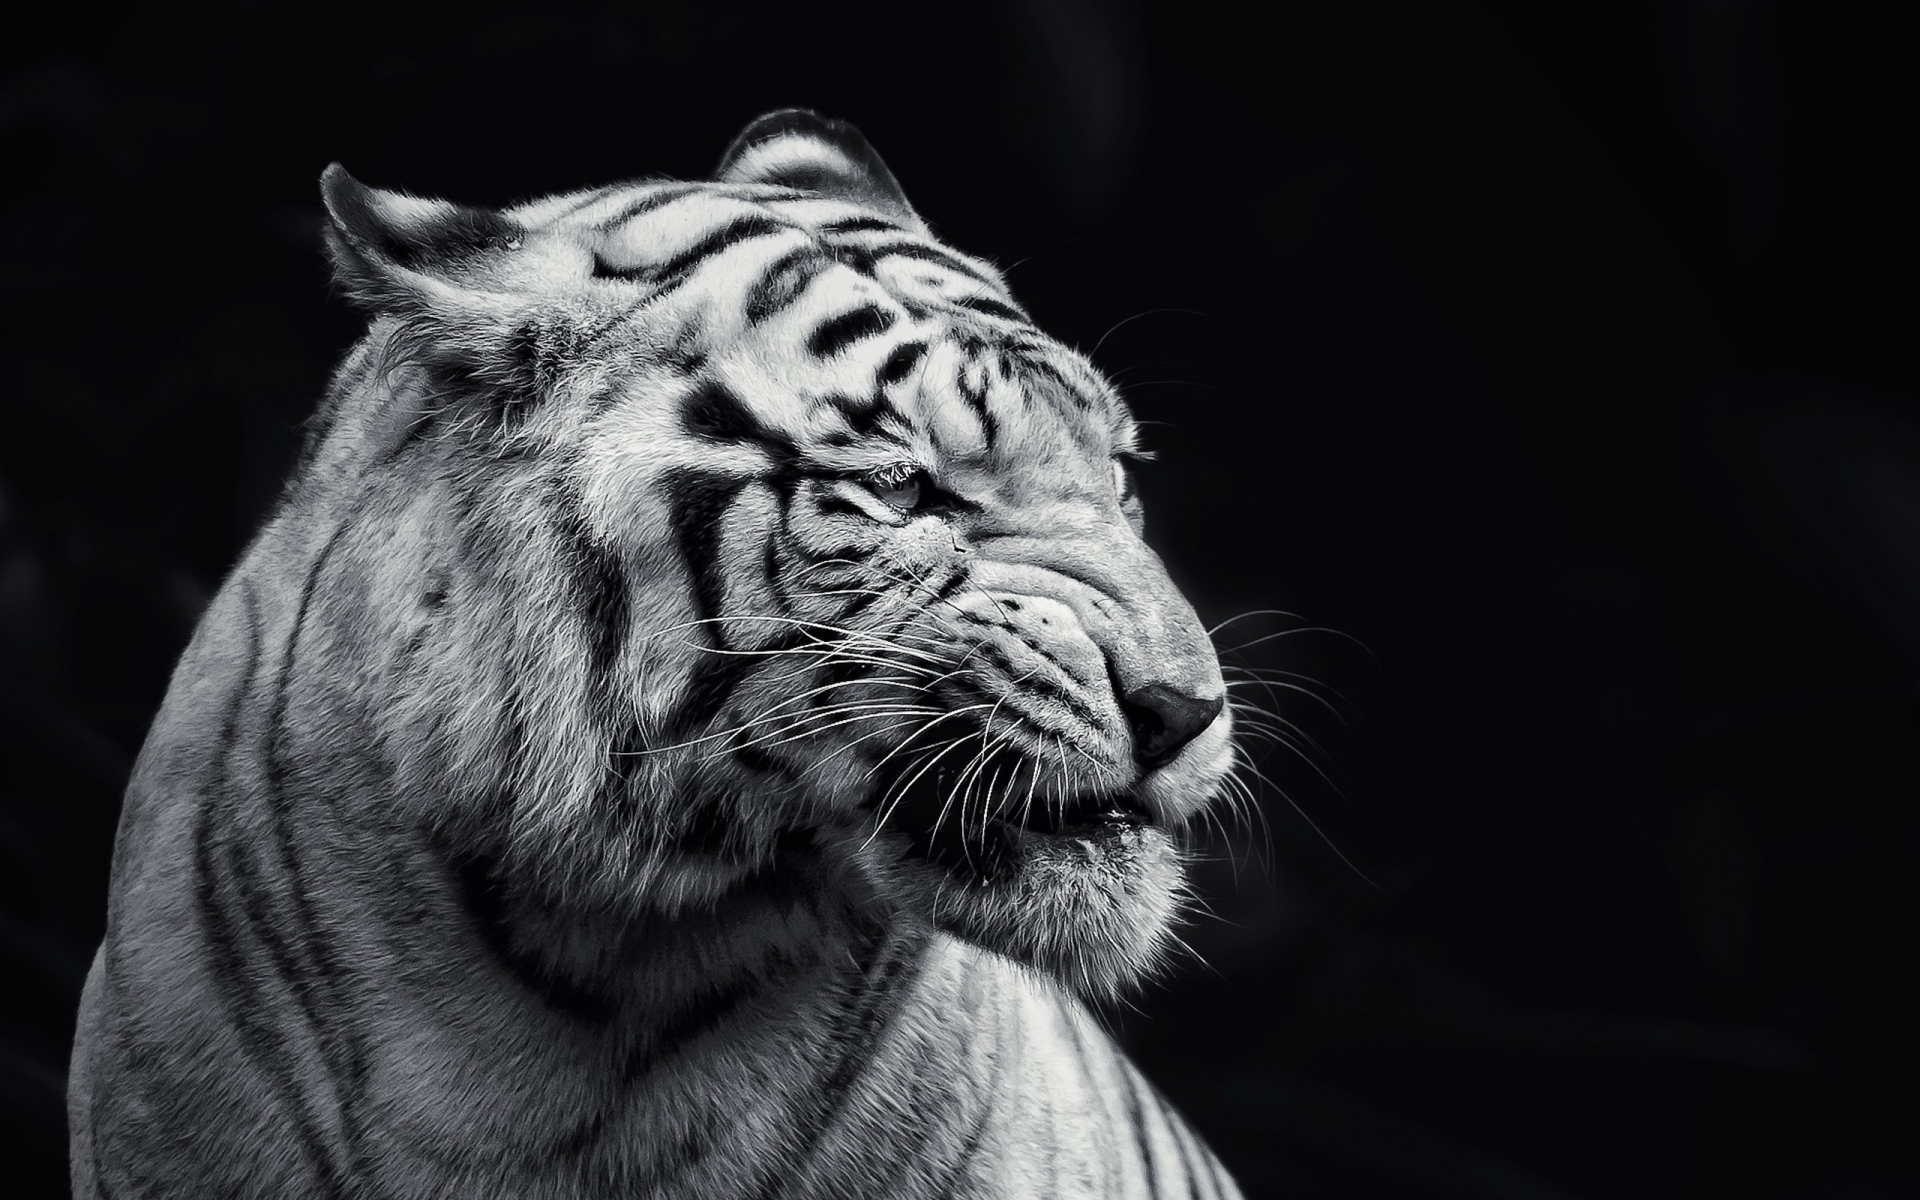 white tigers wallpaper - HD Desktop Wallpapers | 4k HD